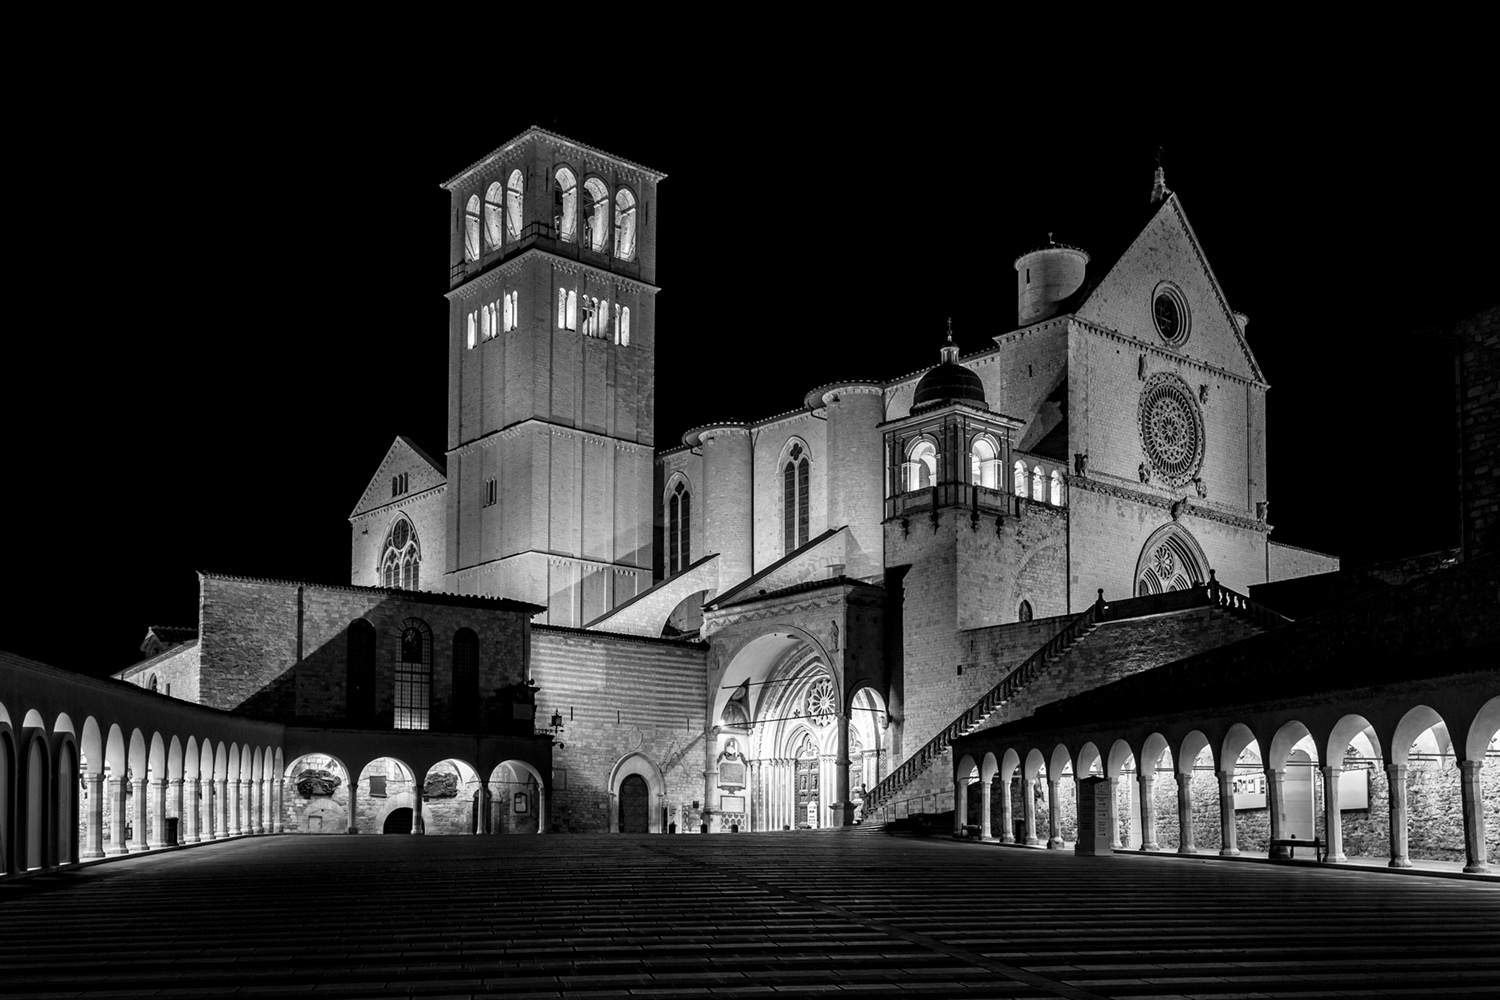 basilica-di-san-francesco-assisi-005